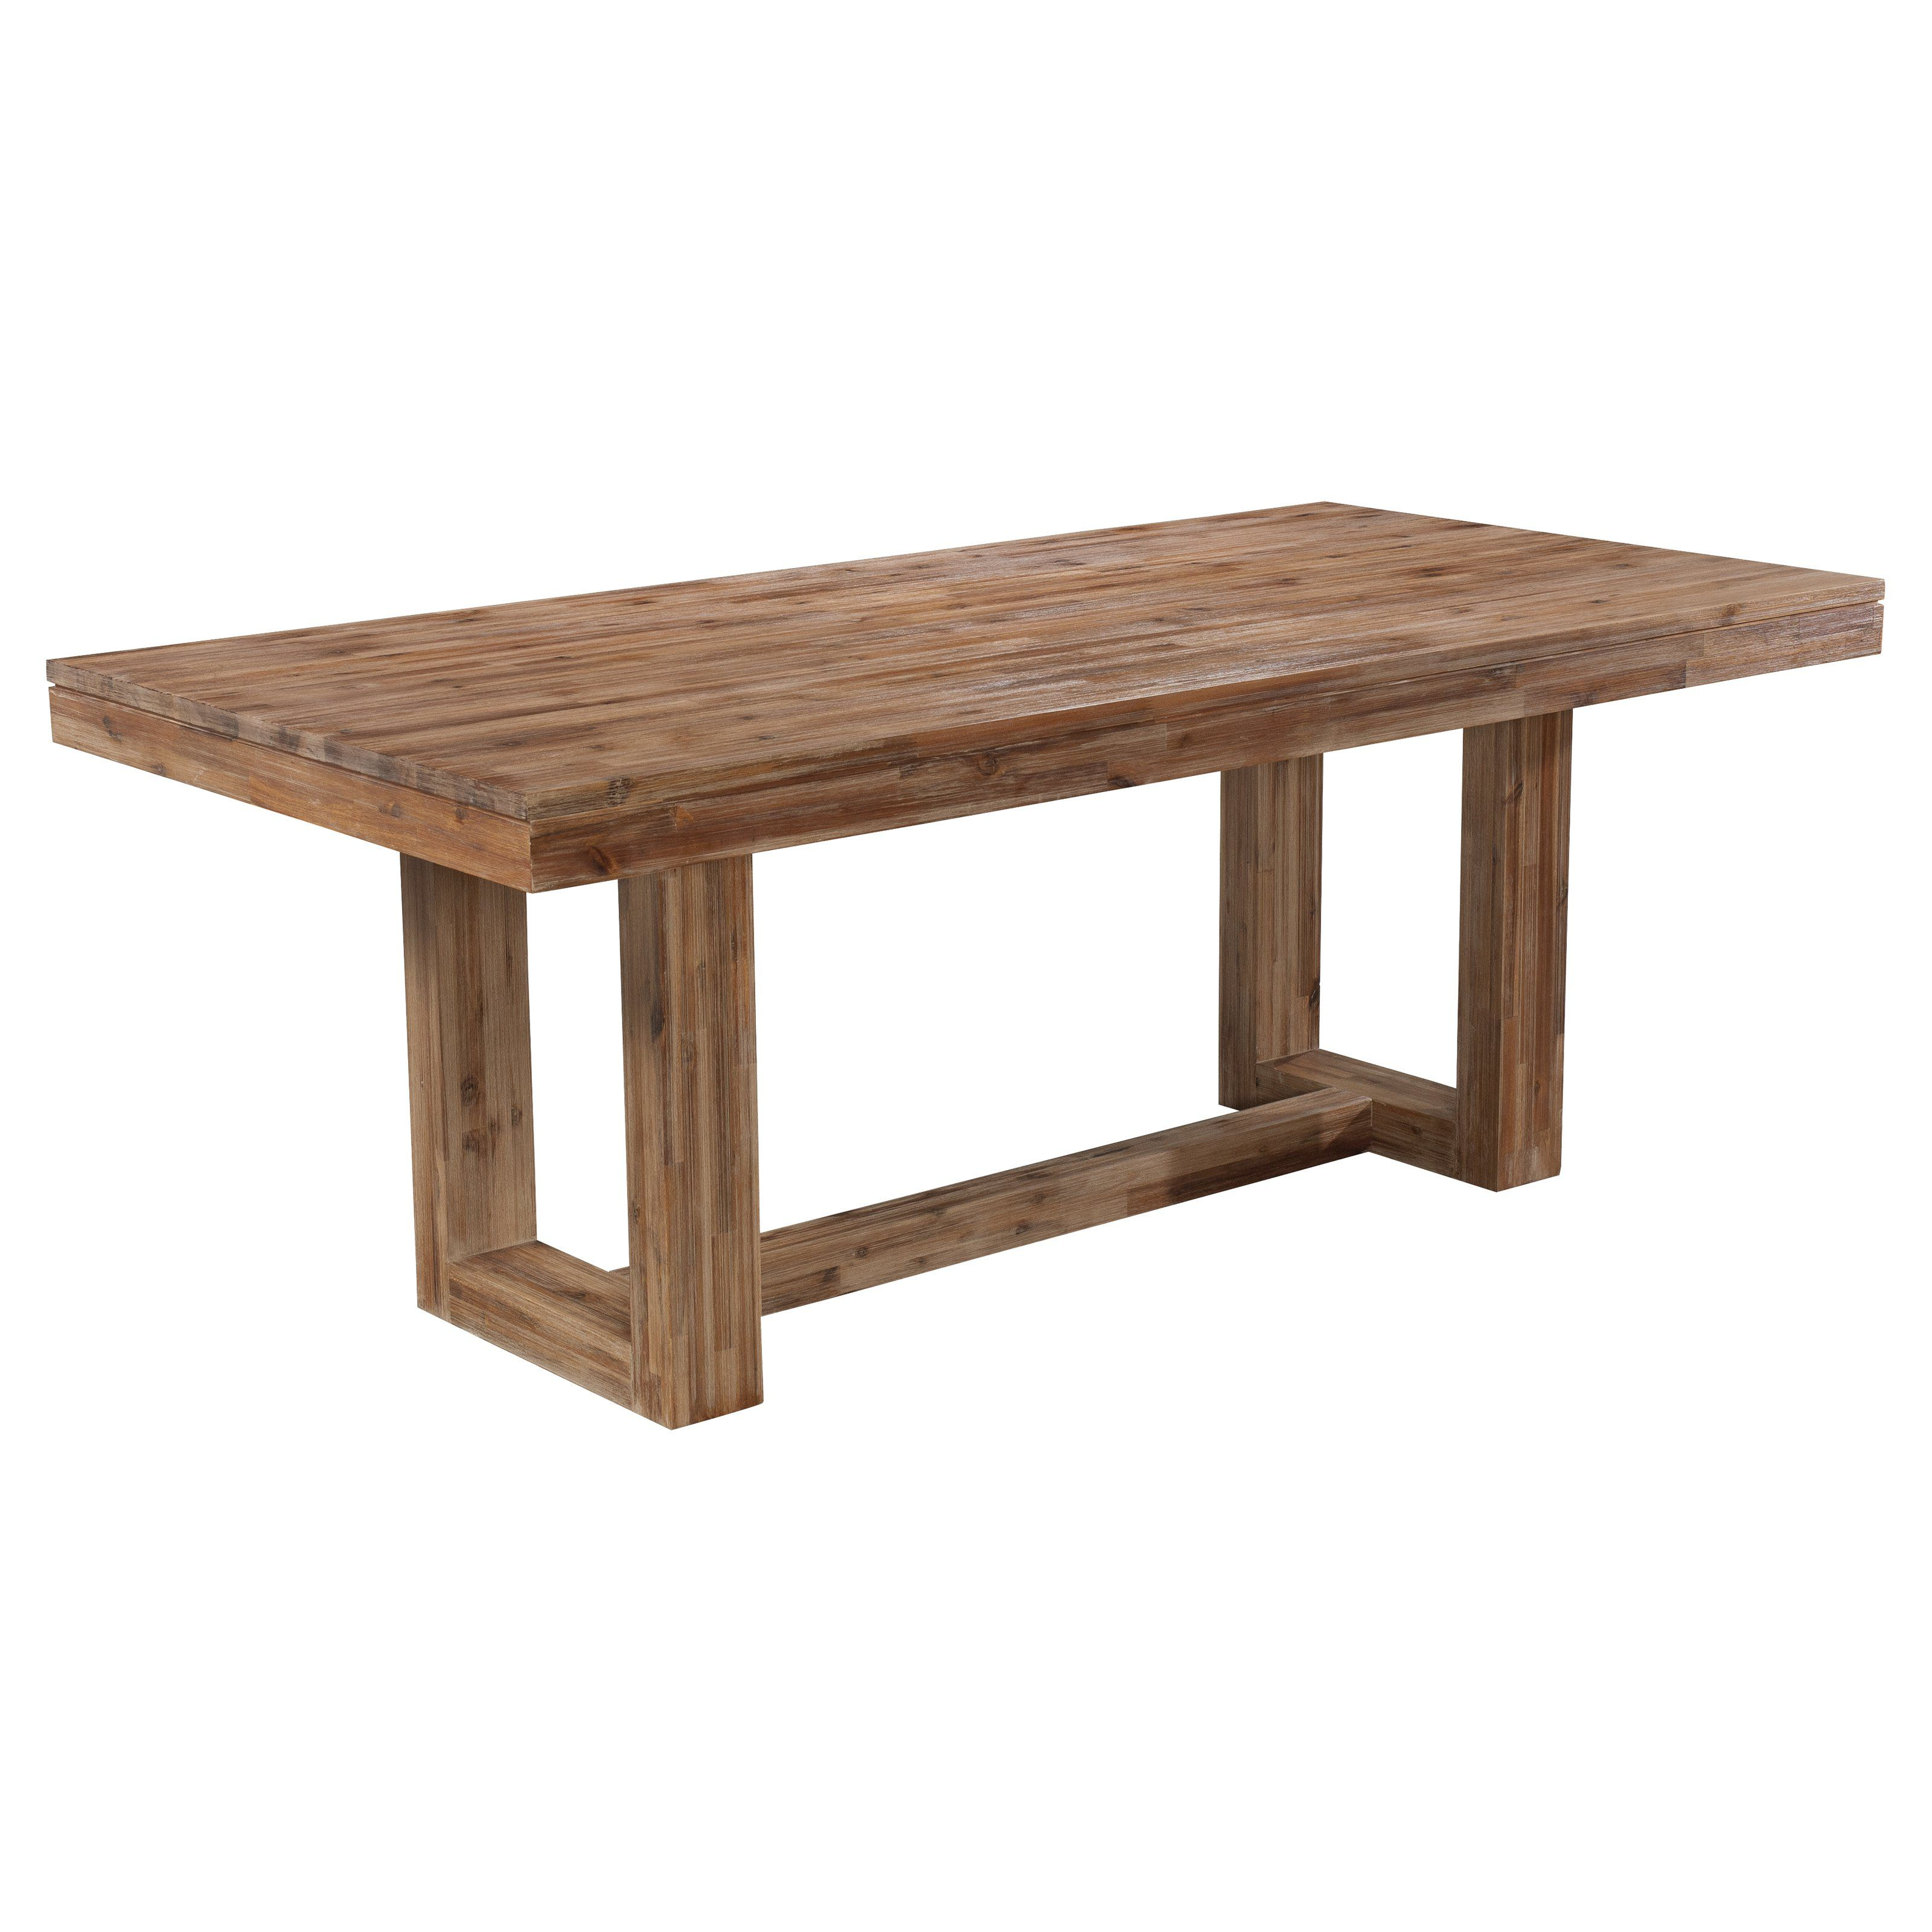 Cresent Fine Furniture Waverly Dining Table With Modern Design Elements Beautifully Combining With Trestle Dining Tables Dining Table In Kitchen Dining Table